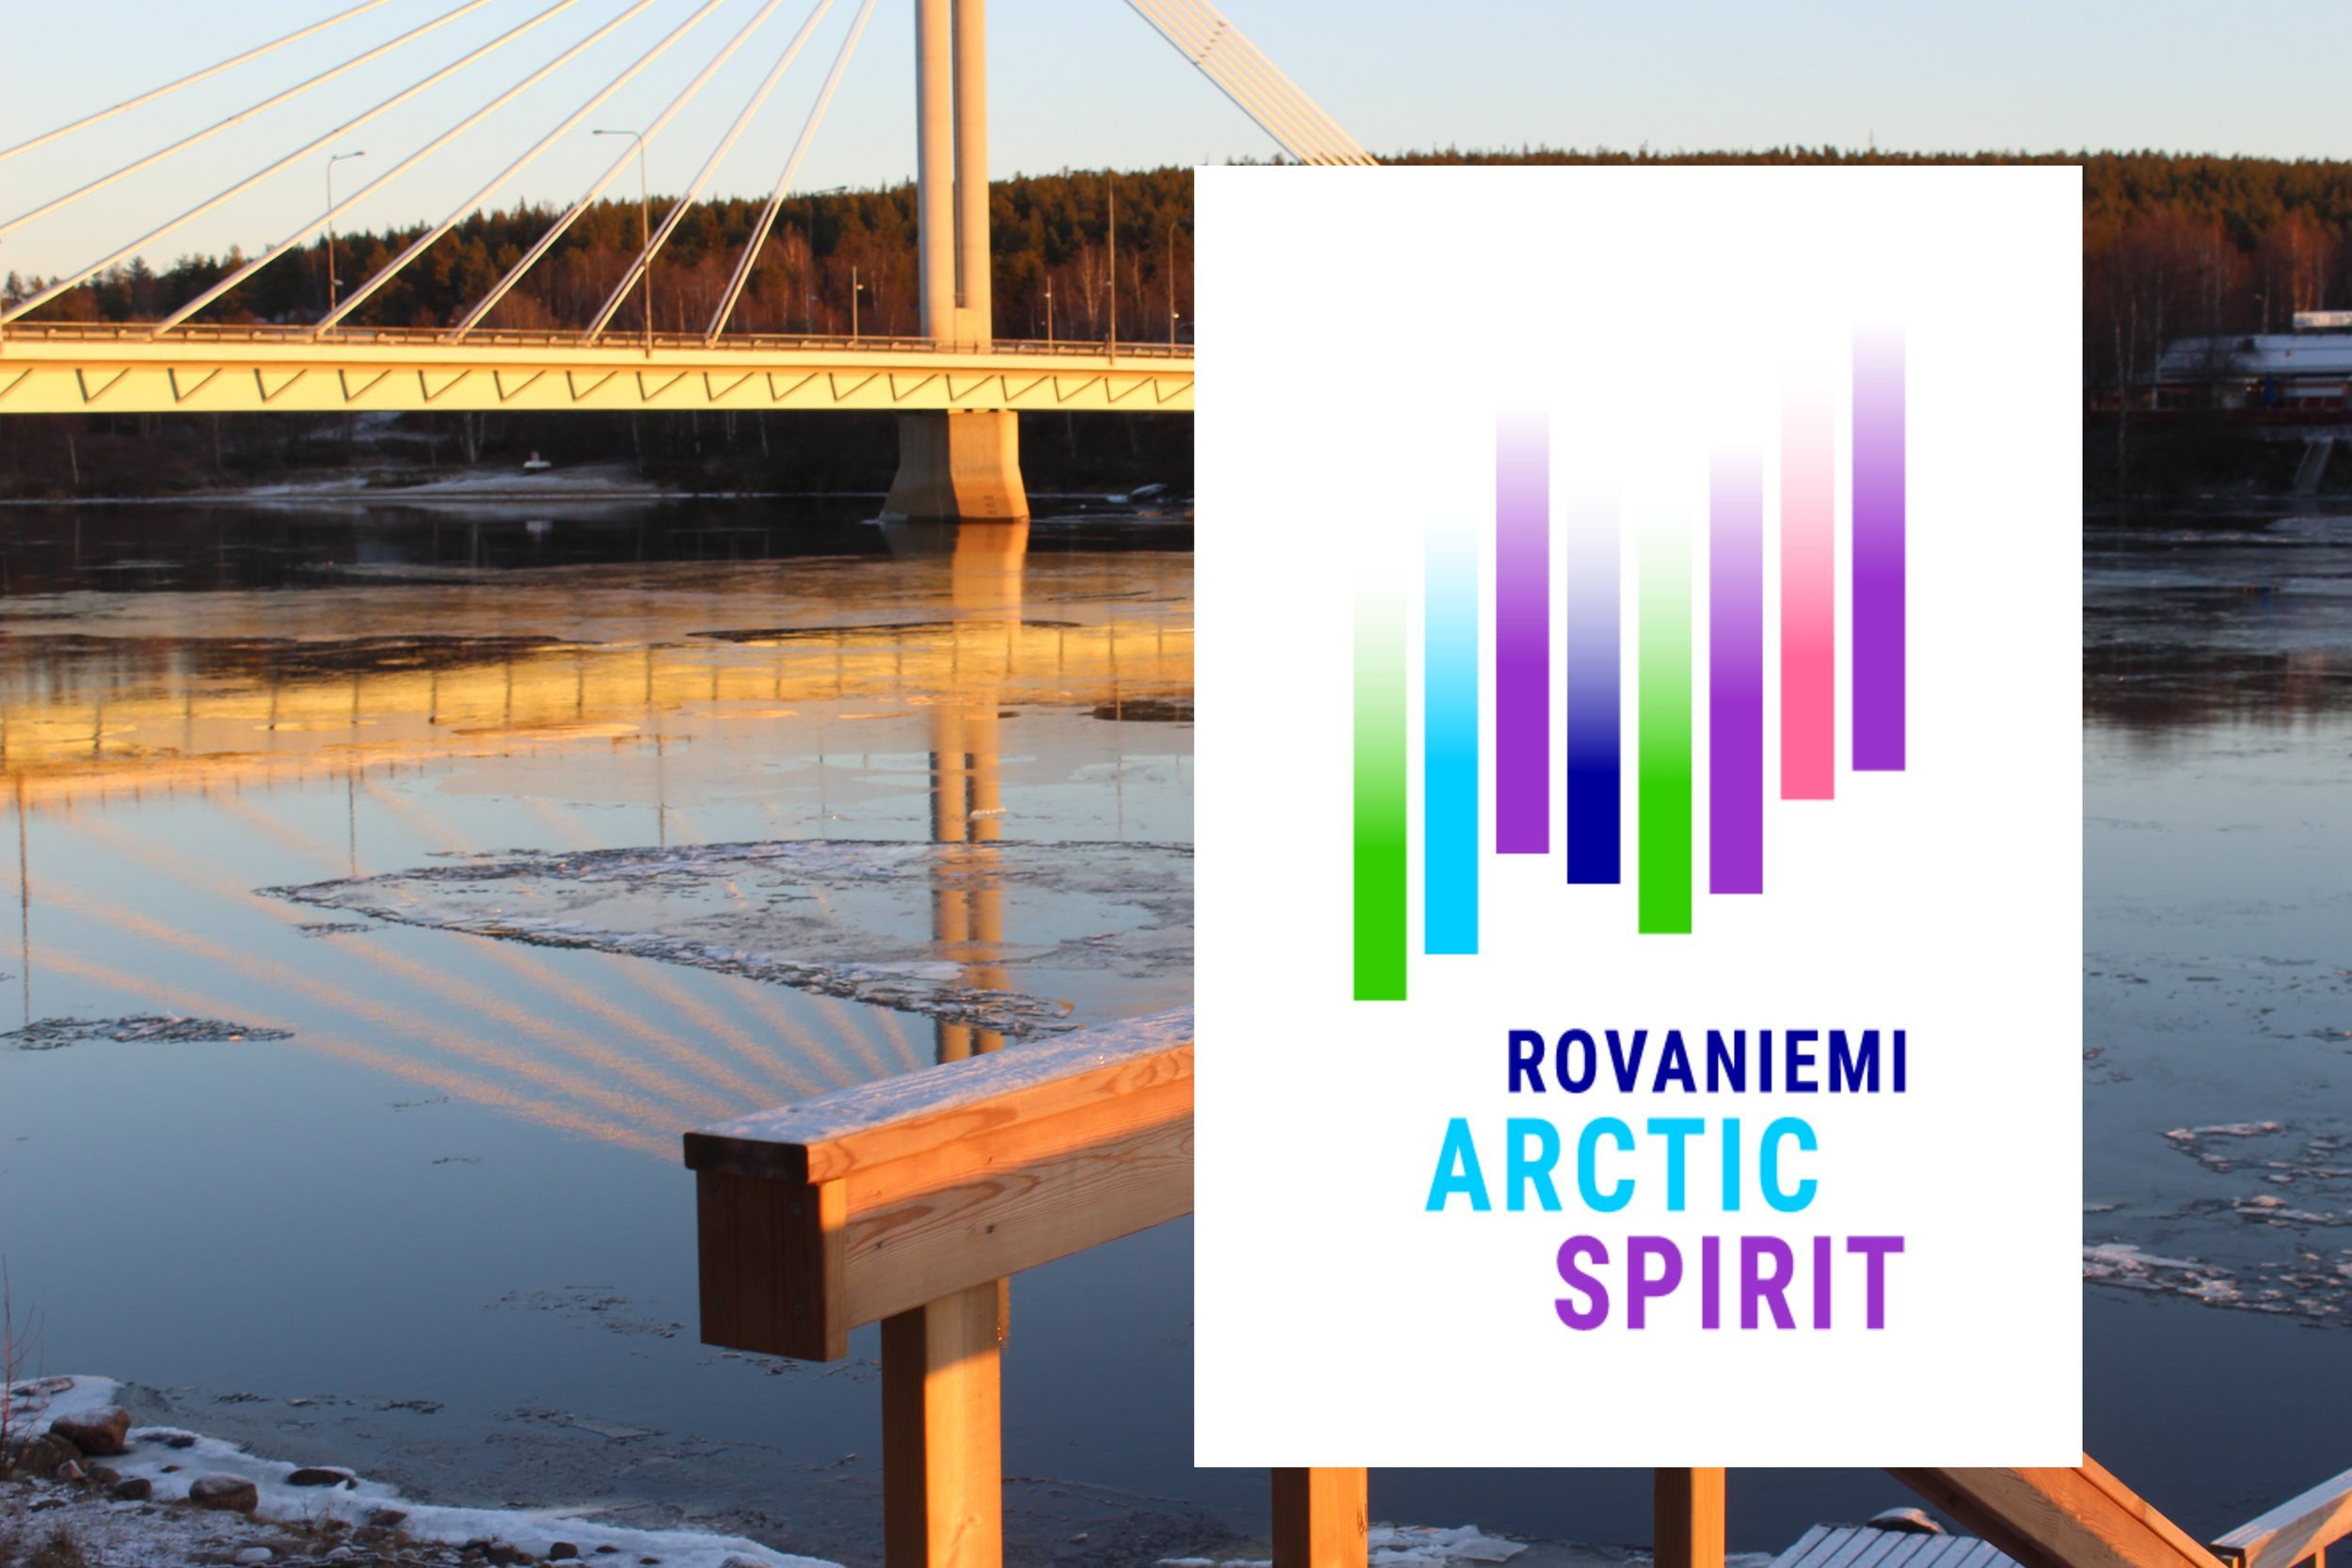 Rovaniemi Arctic Spirit - ICCAY is held alongside and in collaboration with the Rovaniemi Arctic Spirit Conference.